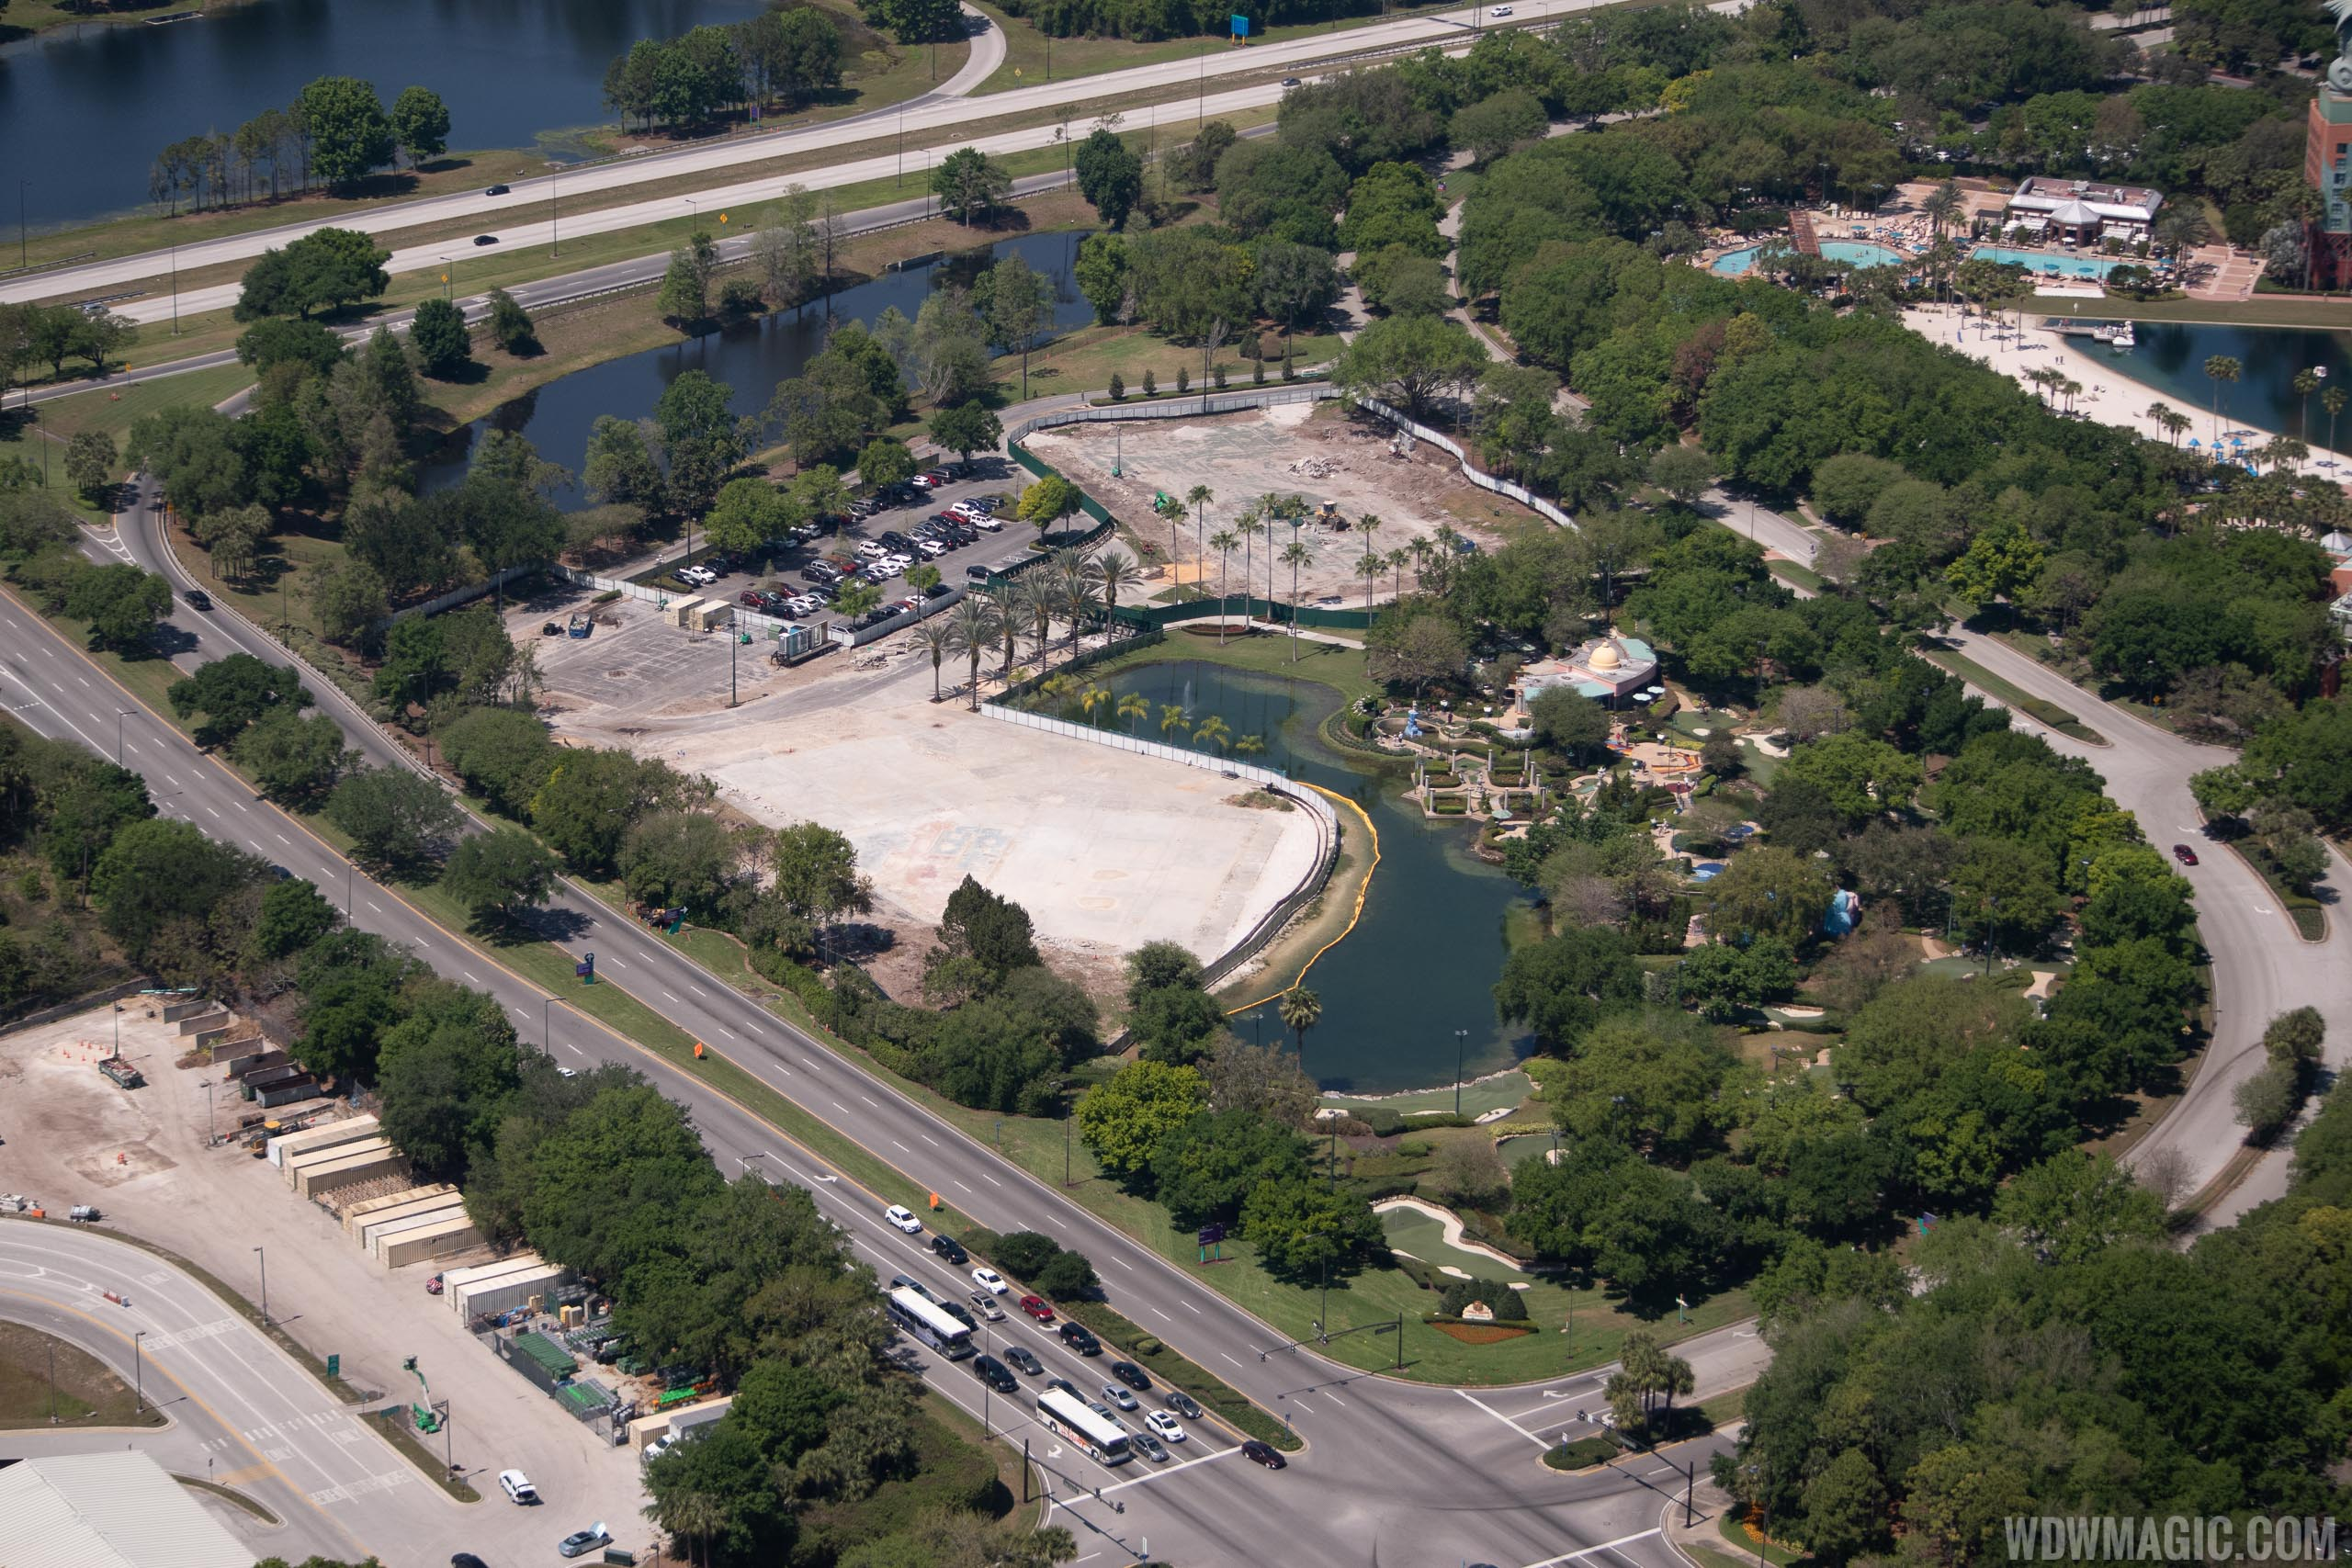 Walt Disney World Swan and Dolphin The Cove construction aerials - March 2019